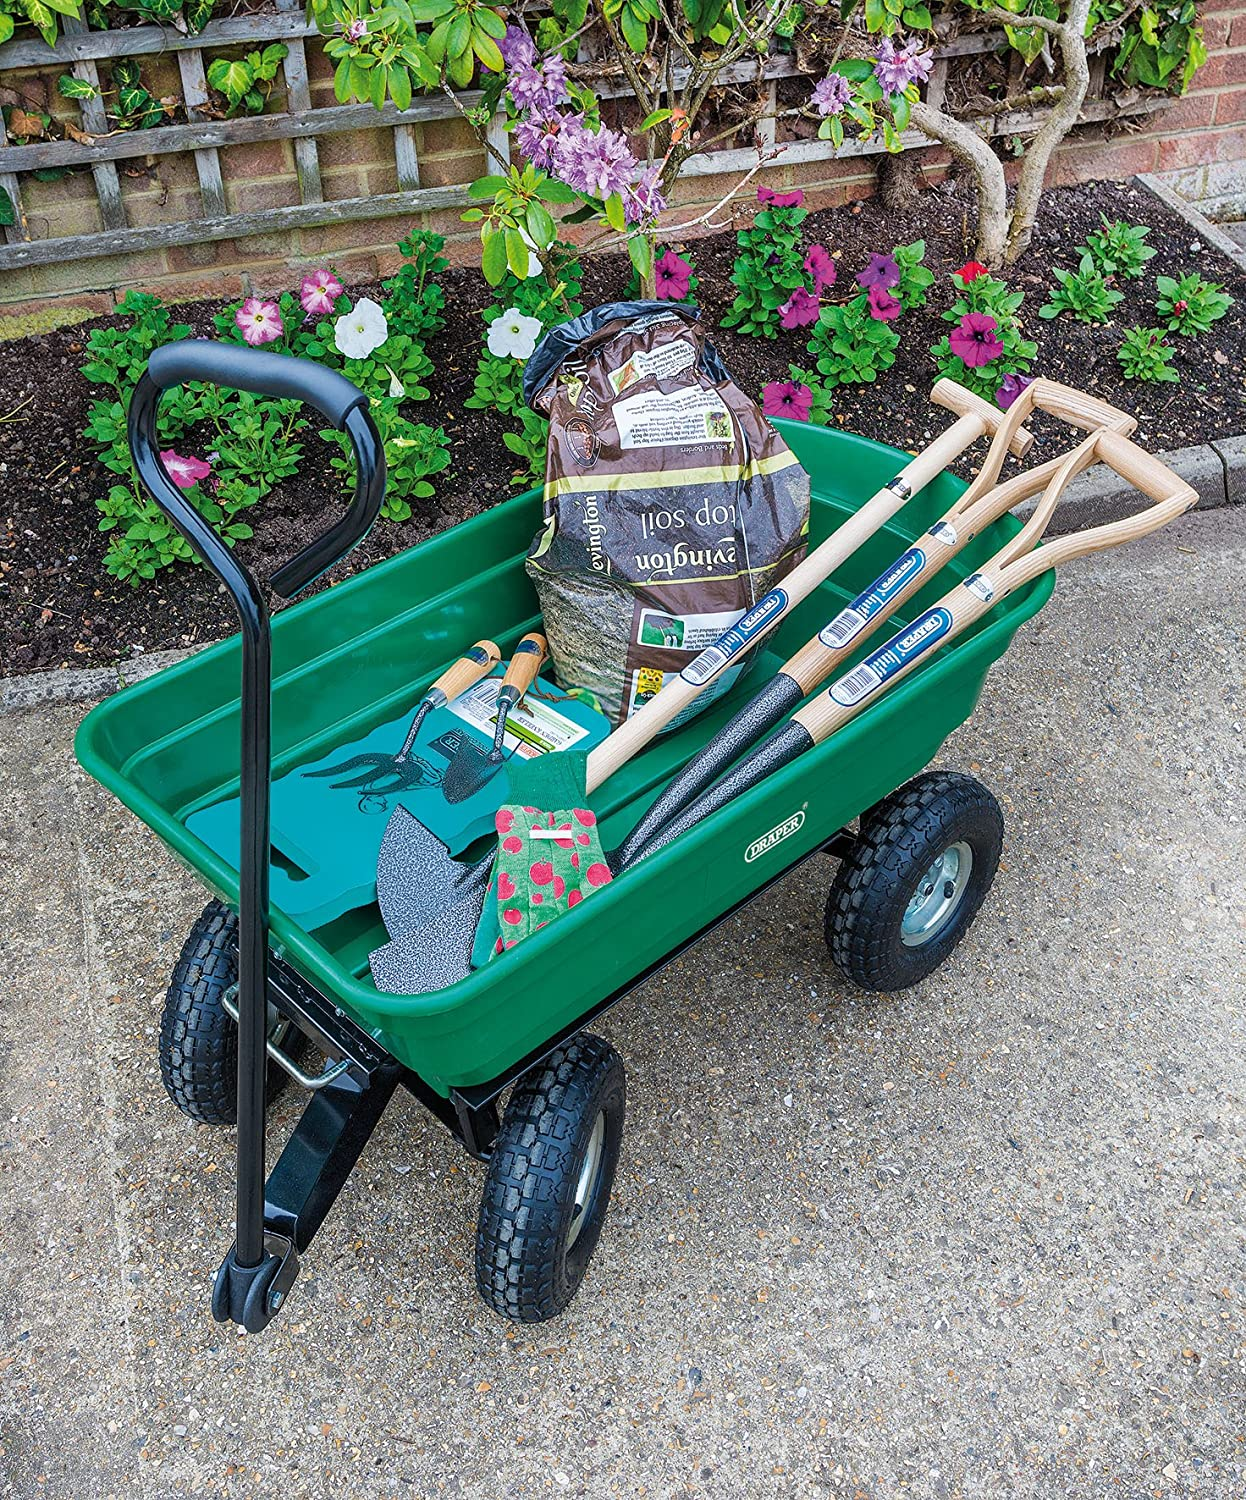 This is a high quality garden trolley cart.